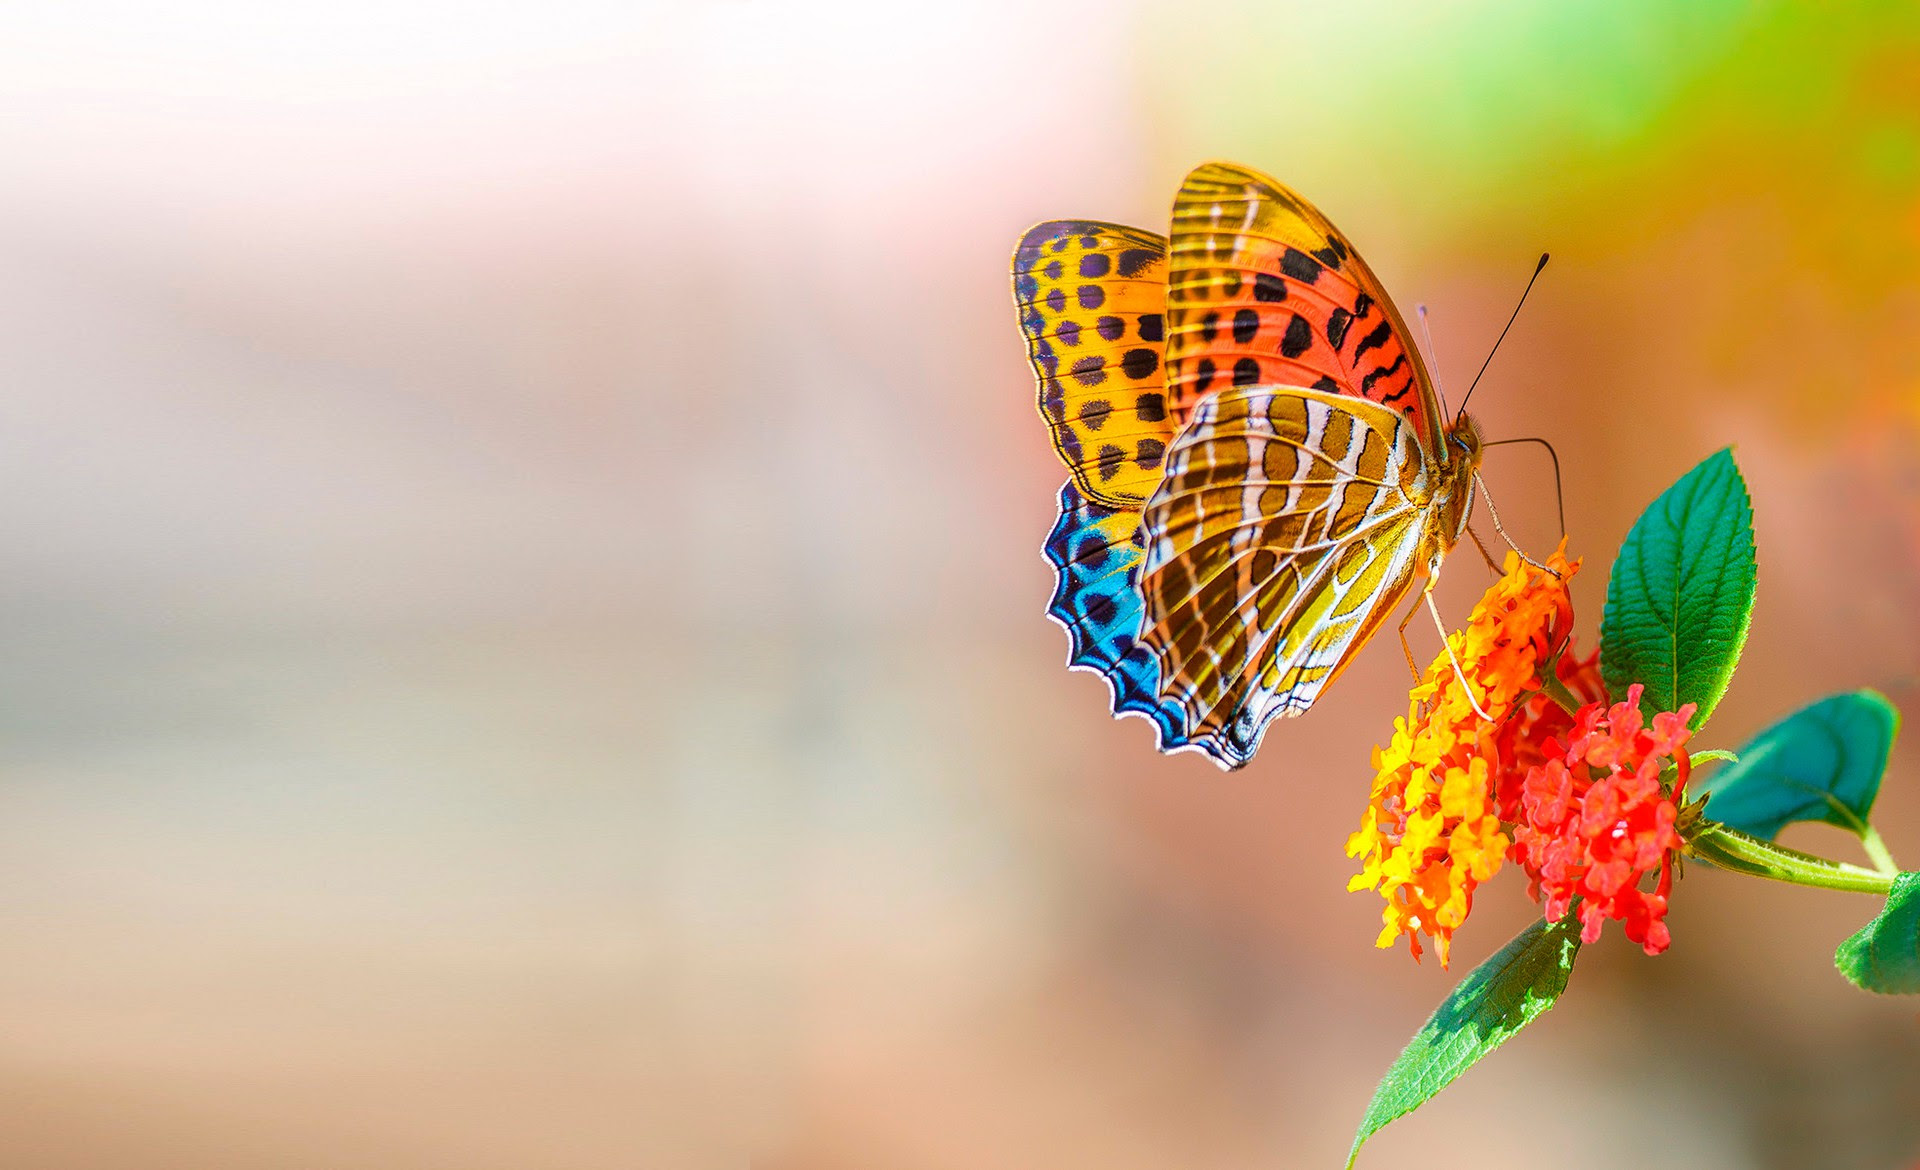 Butterfly and flower wallpaper   nature and landscape ...